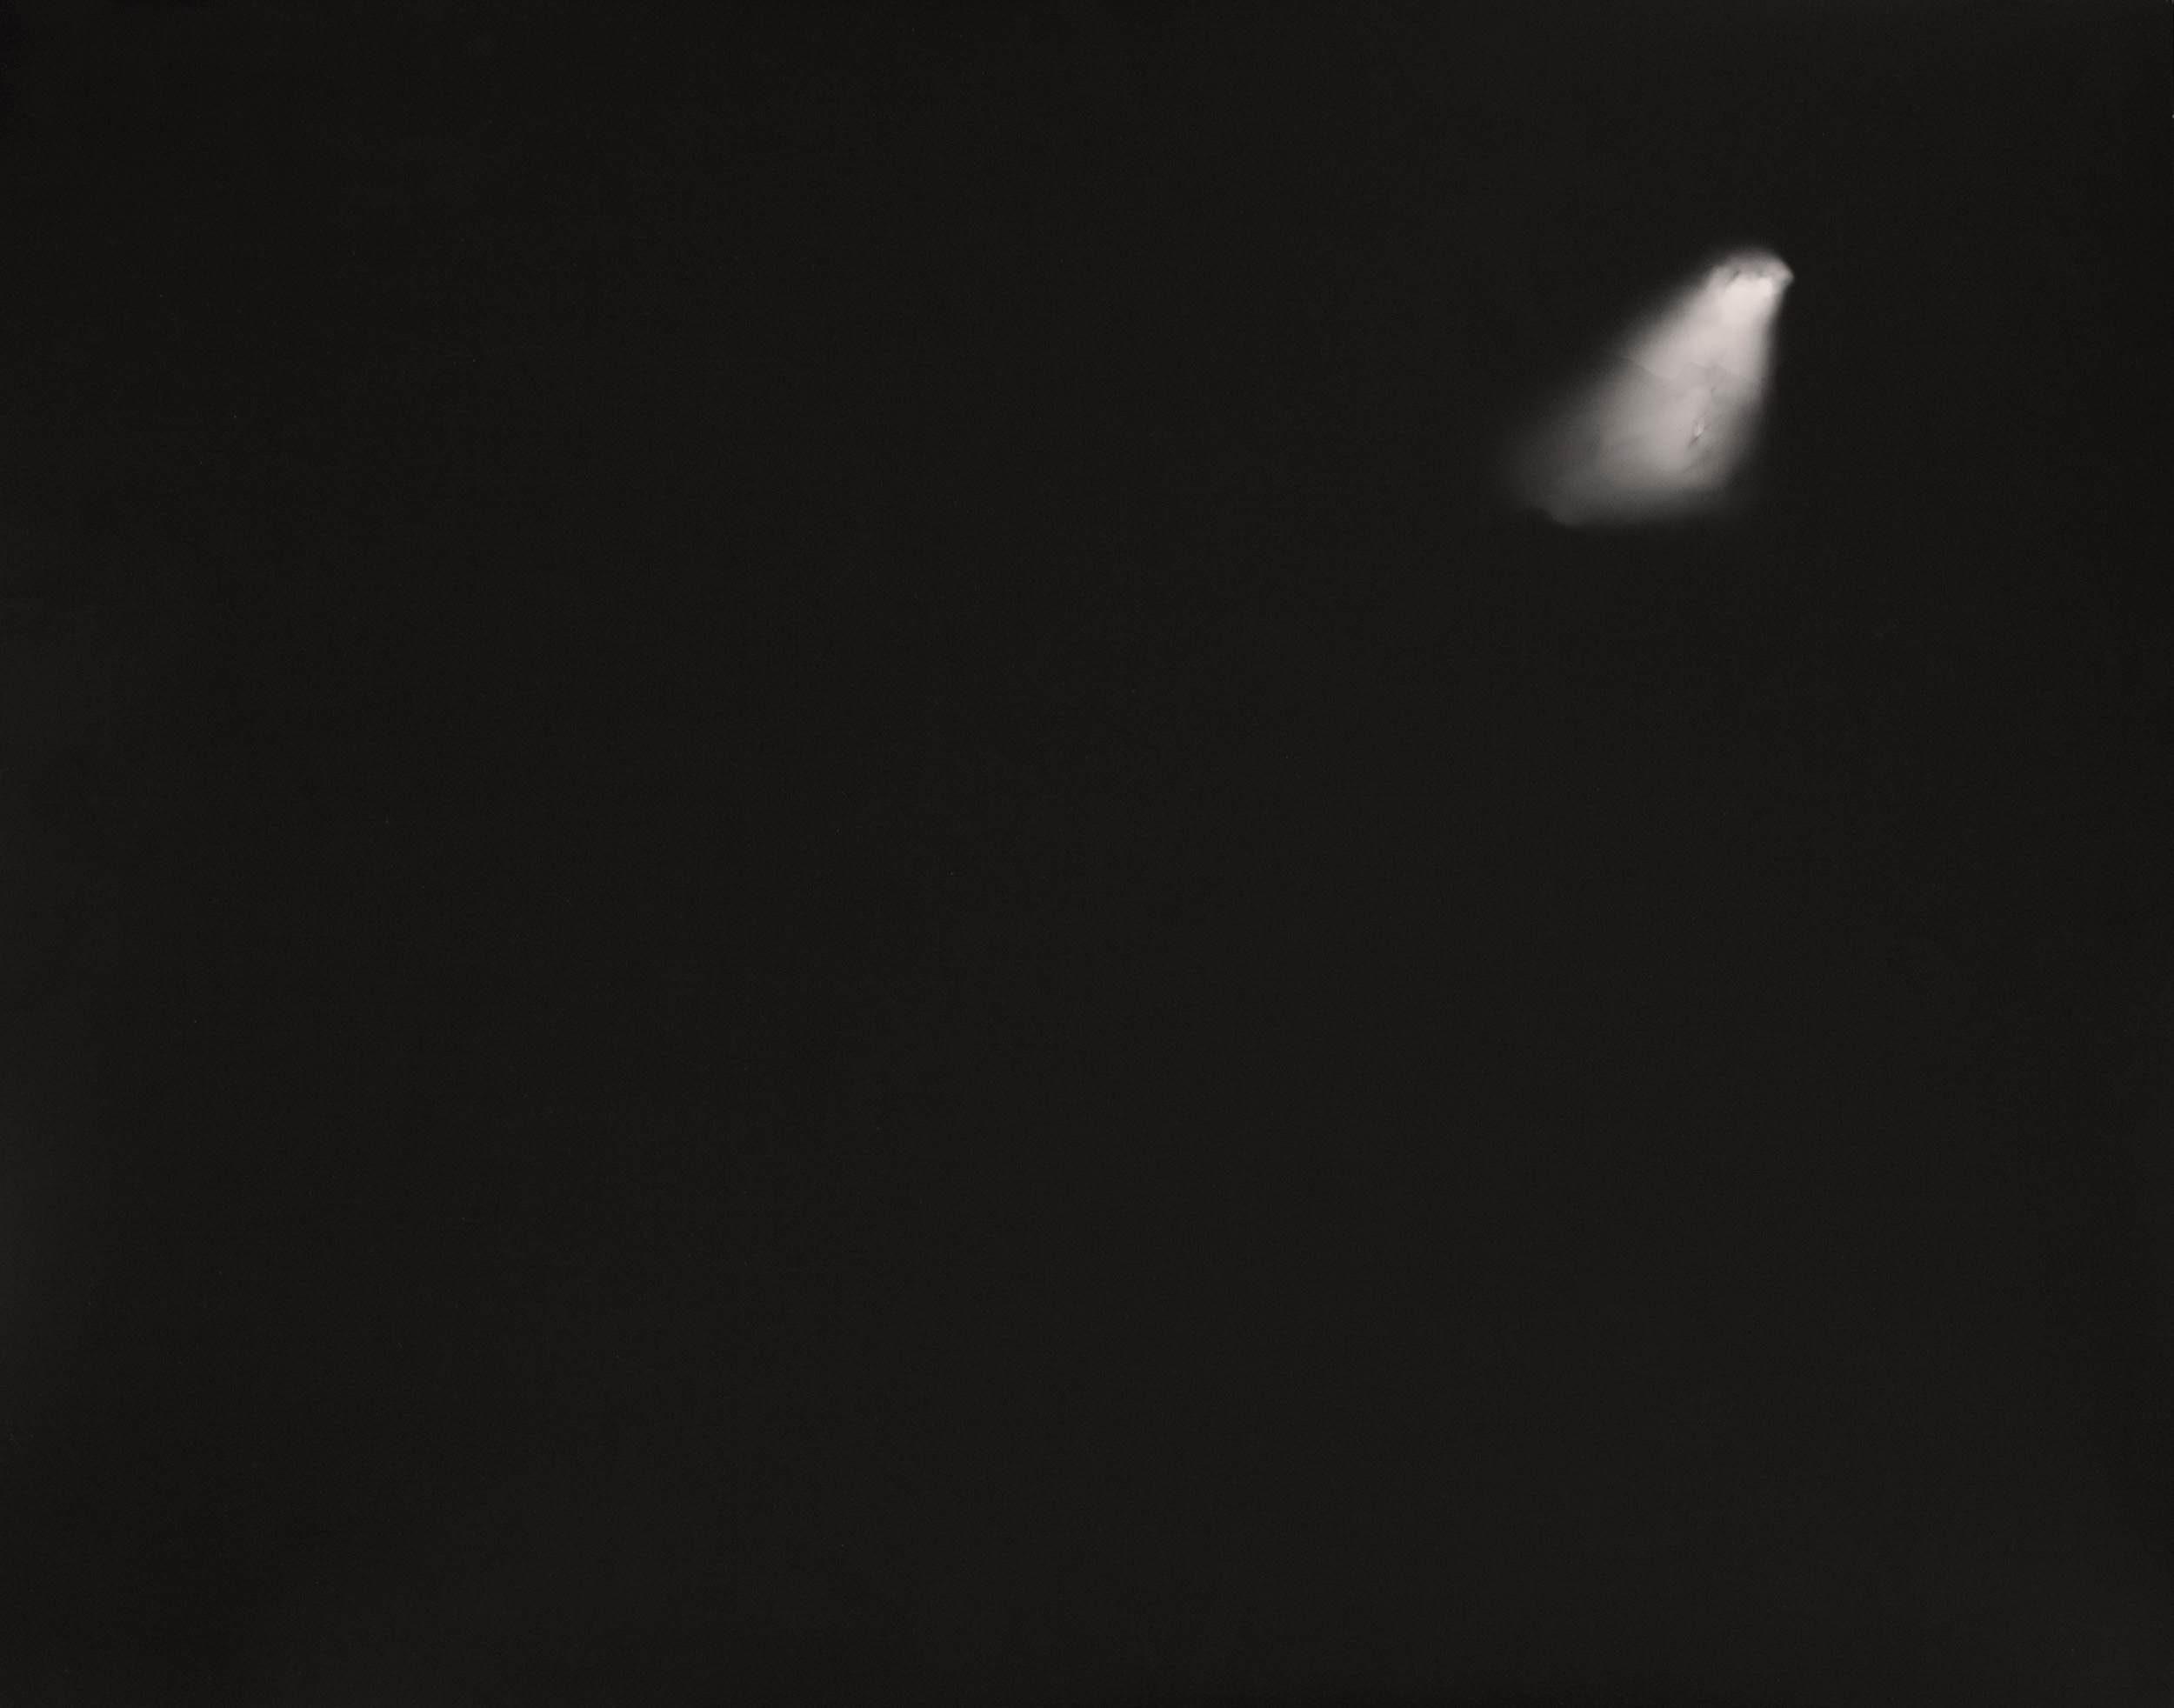 Lunar Photogram, Morgan Hill, CA: March 10, 2015